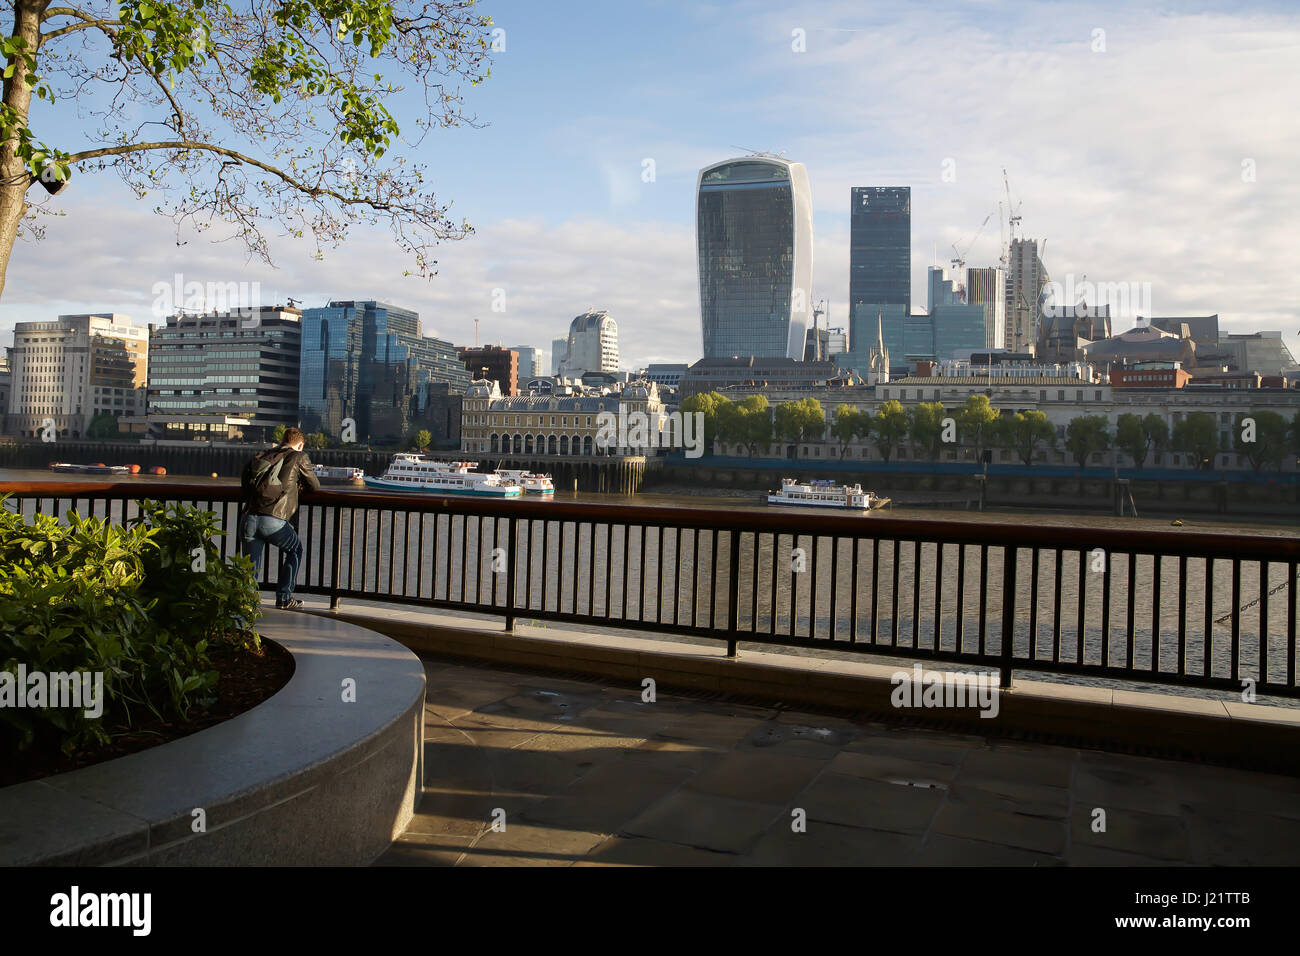 London, UK. 24th Apr, 2017. Blue Skies over London as cold weather is forecast this week Credit: Keith Larby/Alamy - Stock Image